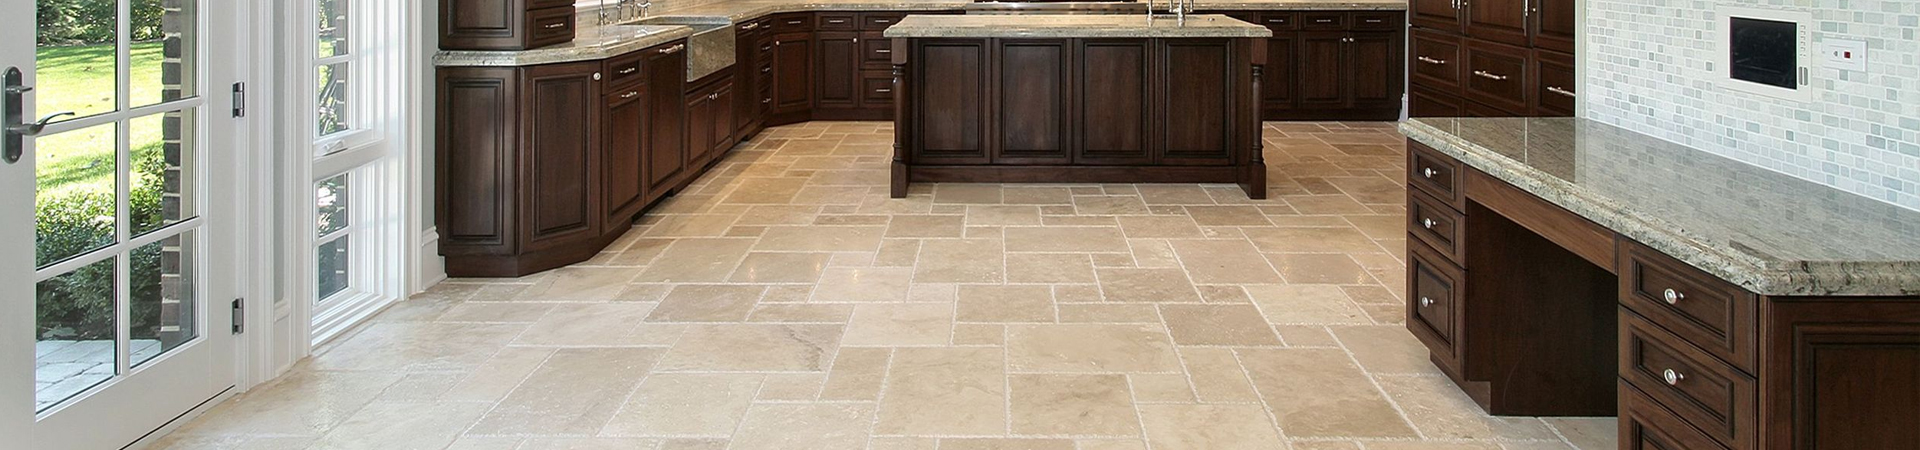 Tile Grout Cleaning Crystal Carpet Cleaning - Cleaning grout off new tiles